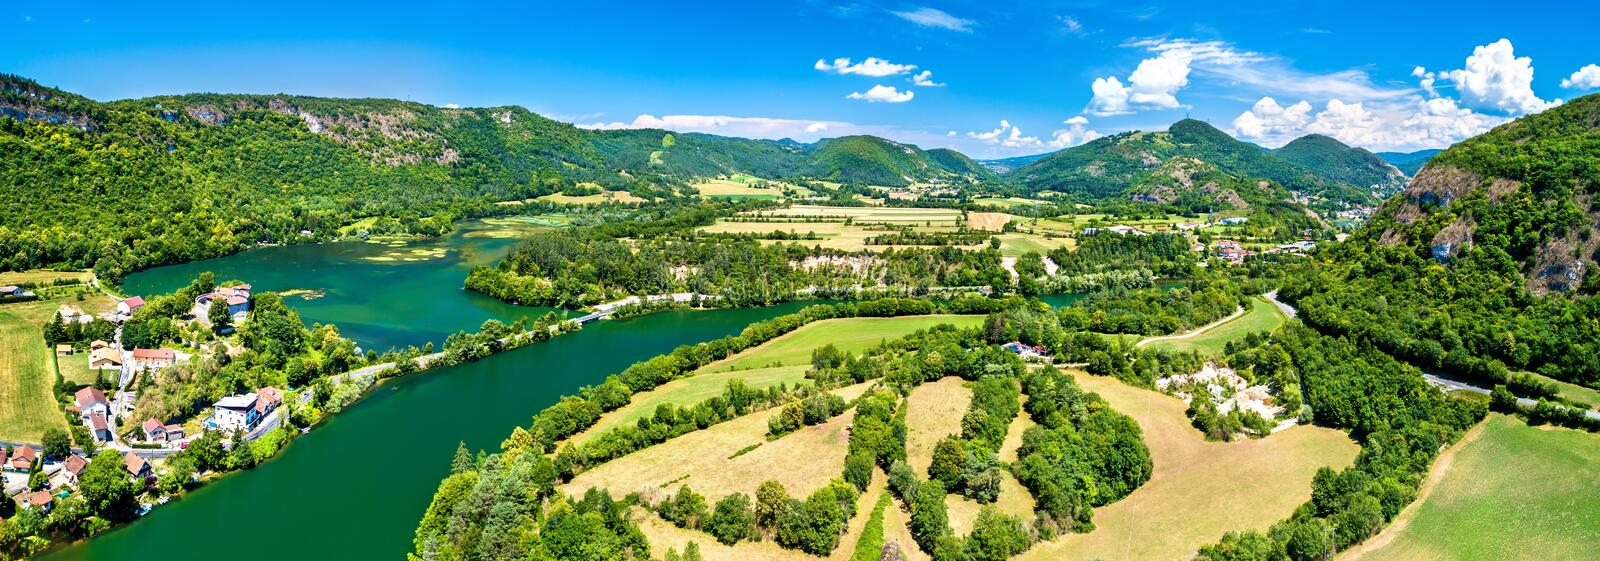 Gorge of the Ain river in France. The gorge of the Ain river in France stock images